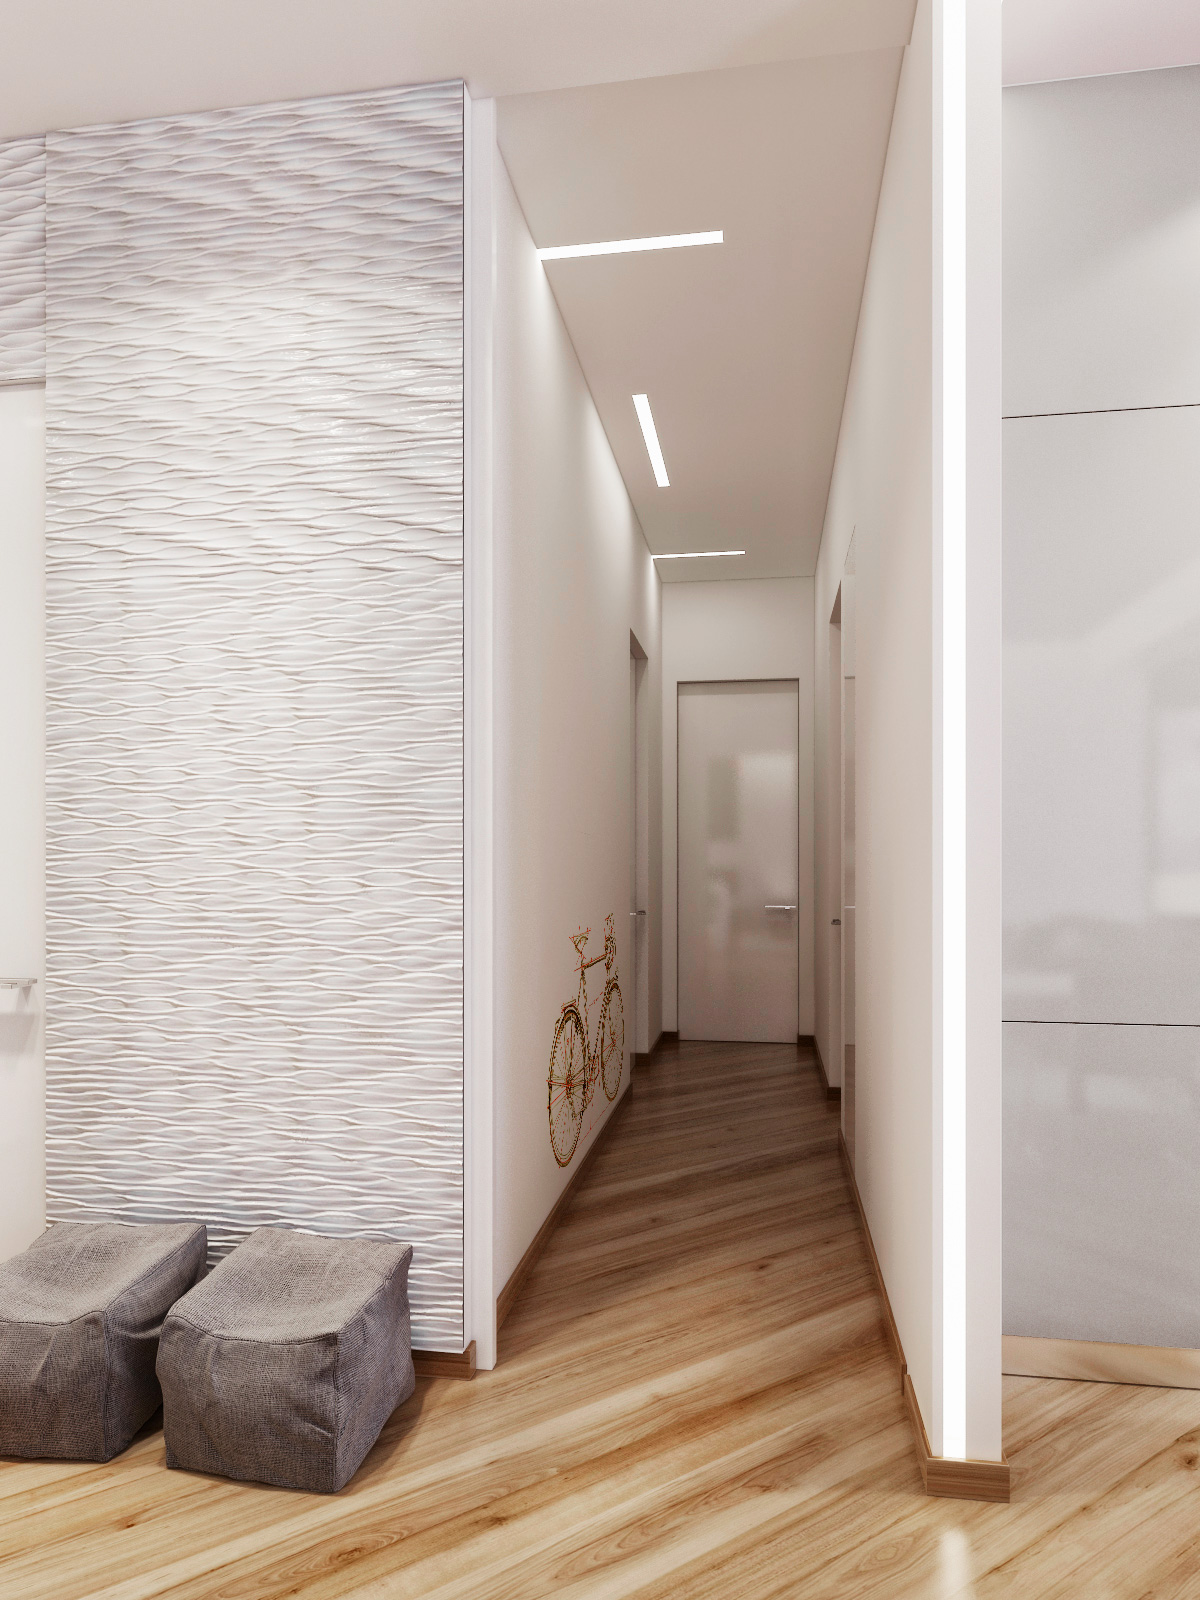 Corridor Design: Ukrainian Design Team Creates Interiors Of Luxurious Comfort